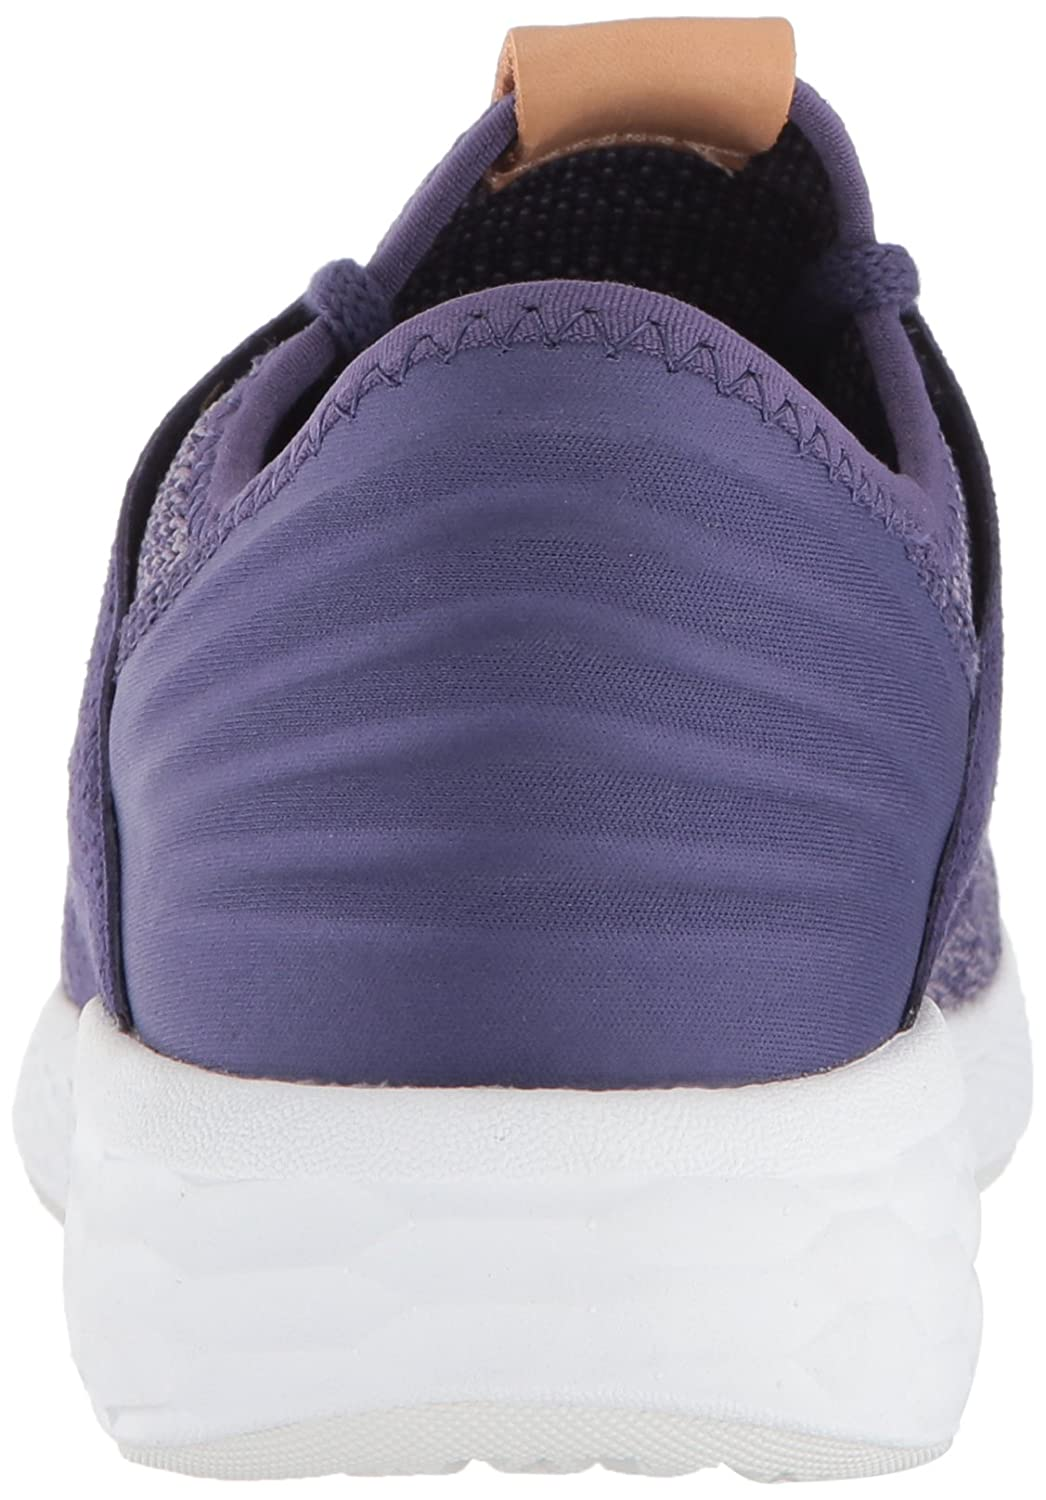 New Balance Women's Cruz Shoe V2 Fresh Foam Running Shoe Cruz B075R7W8KN 11 D US|Wild Indigo 402 fe50c9